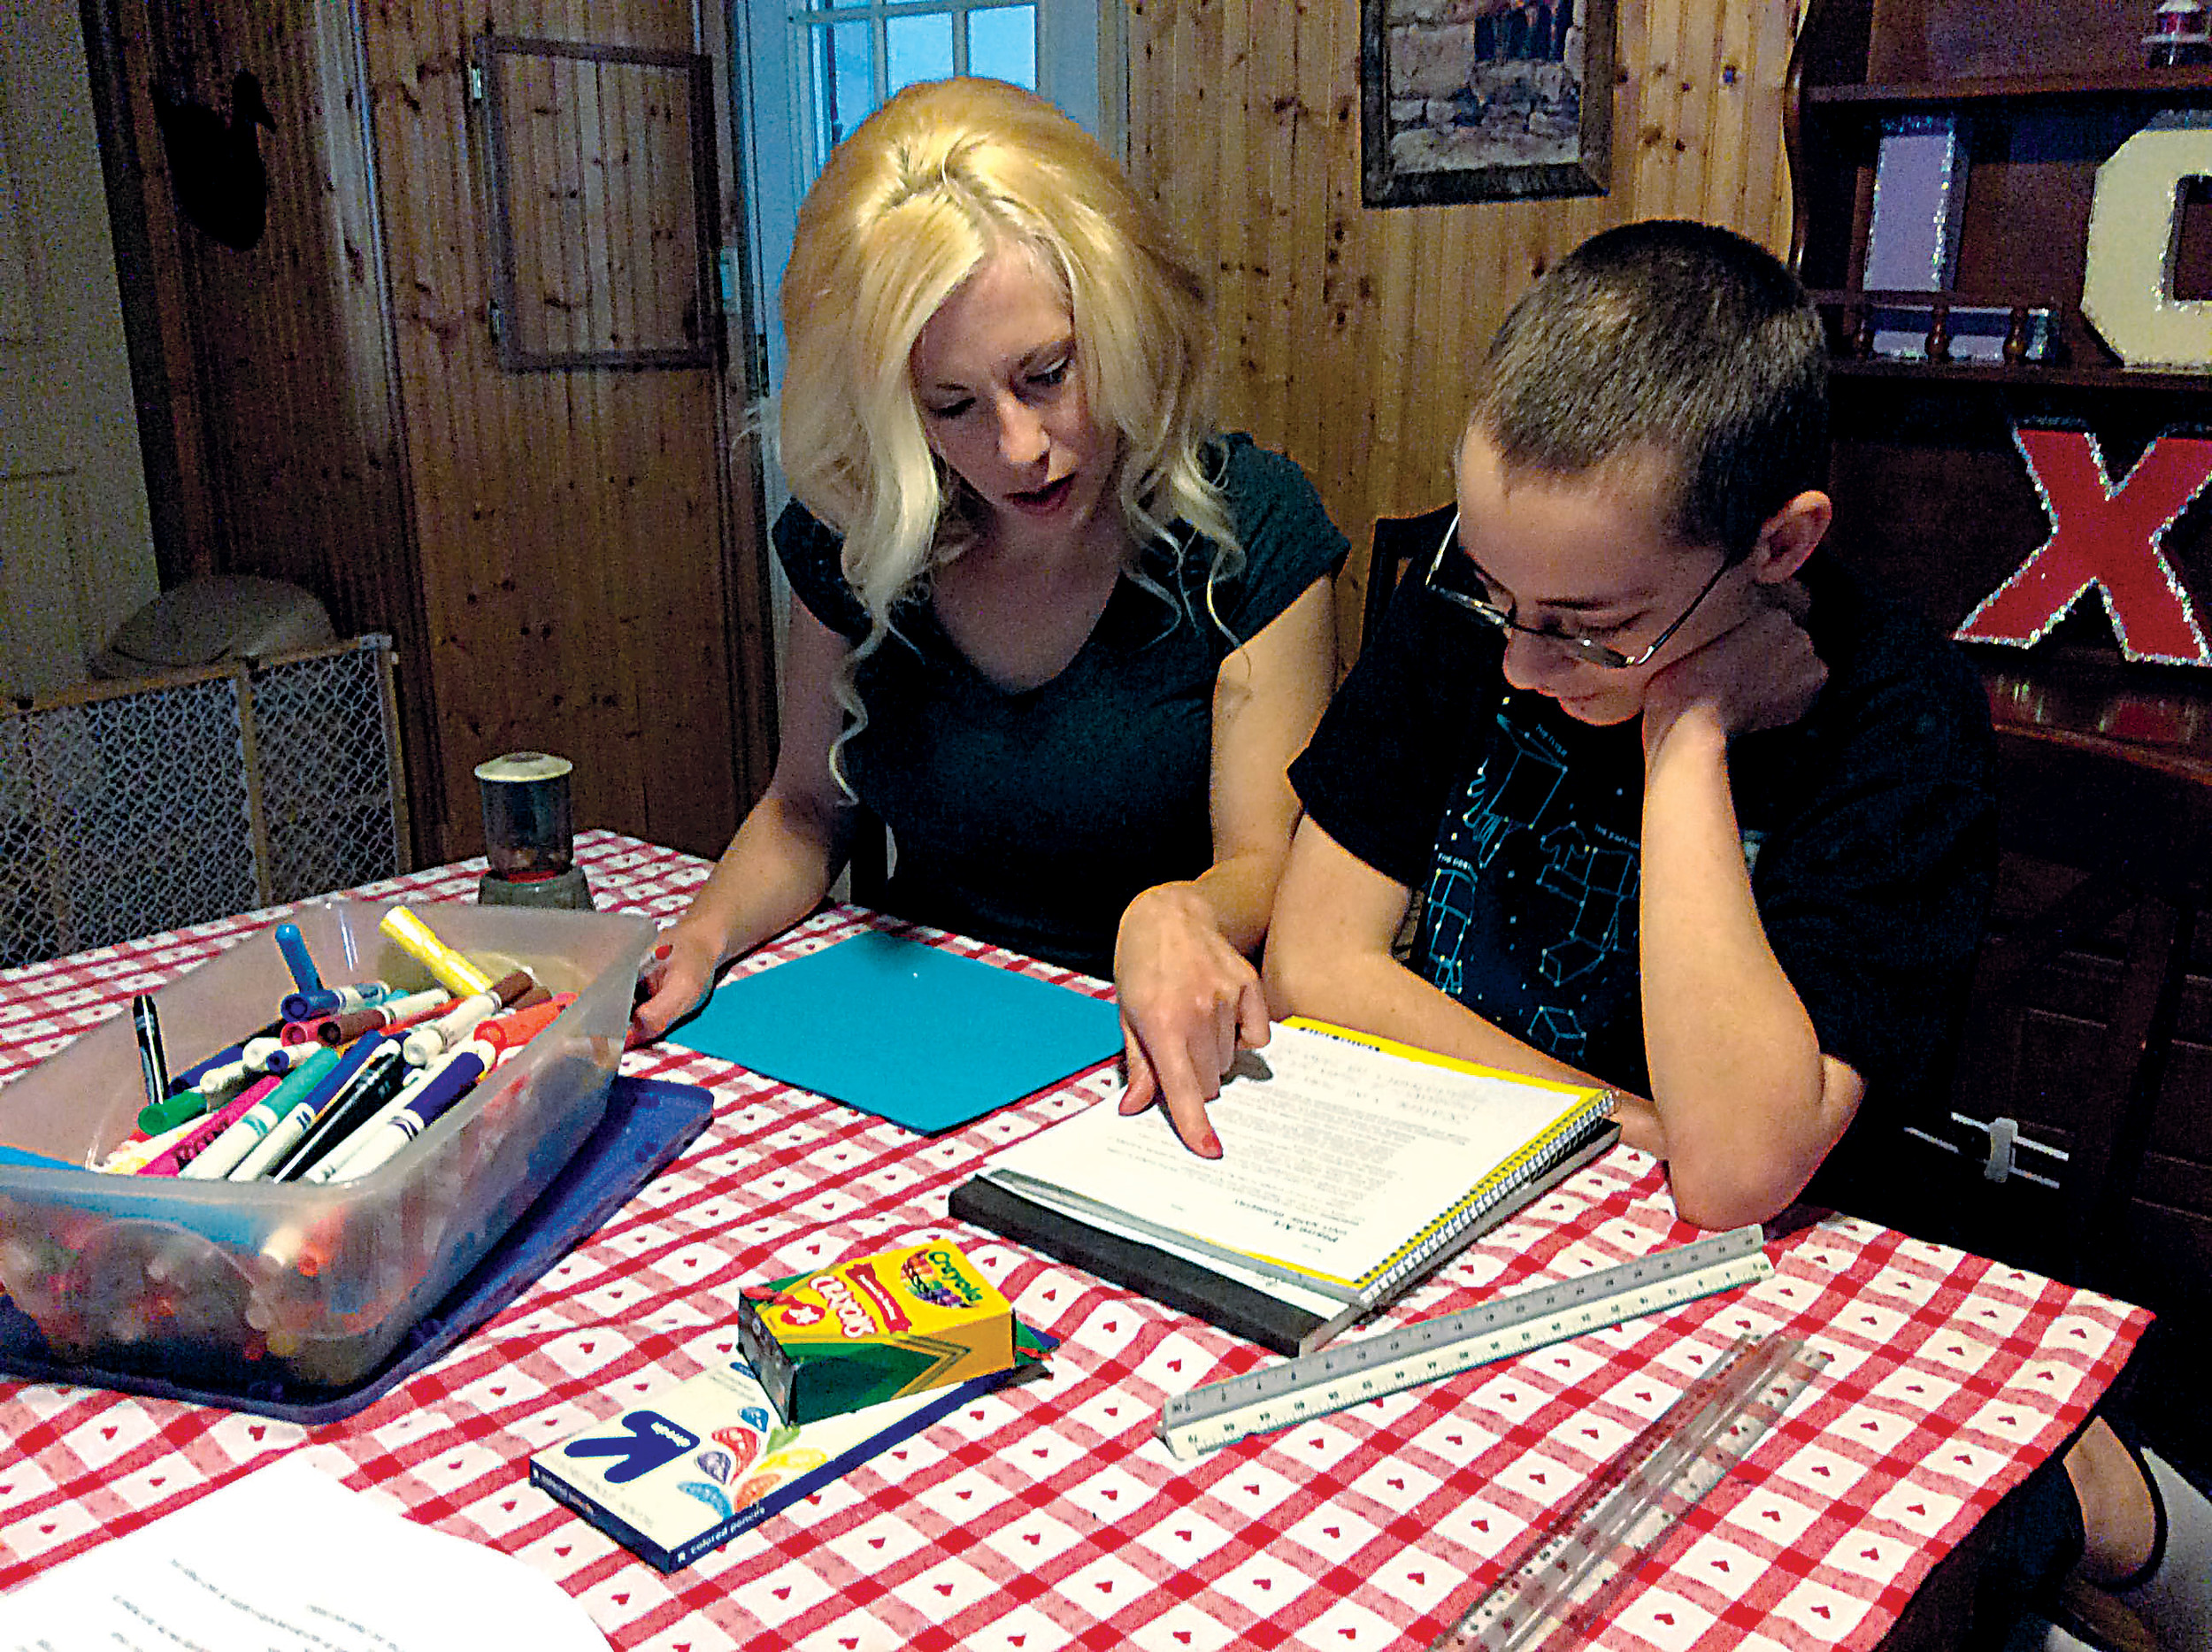 Nicole Robinson (left) gives a math lesson to her son Ethan (right) during home-schooling instruction at the kitchen table of their residence in Highspire.